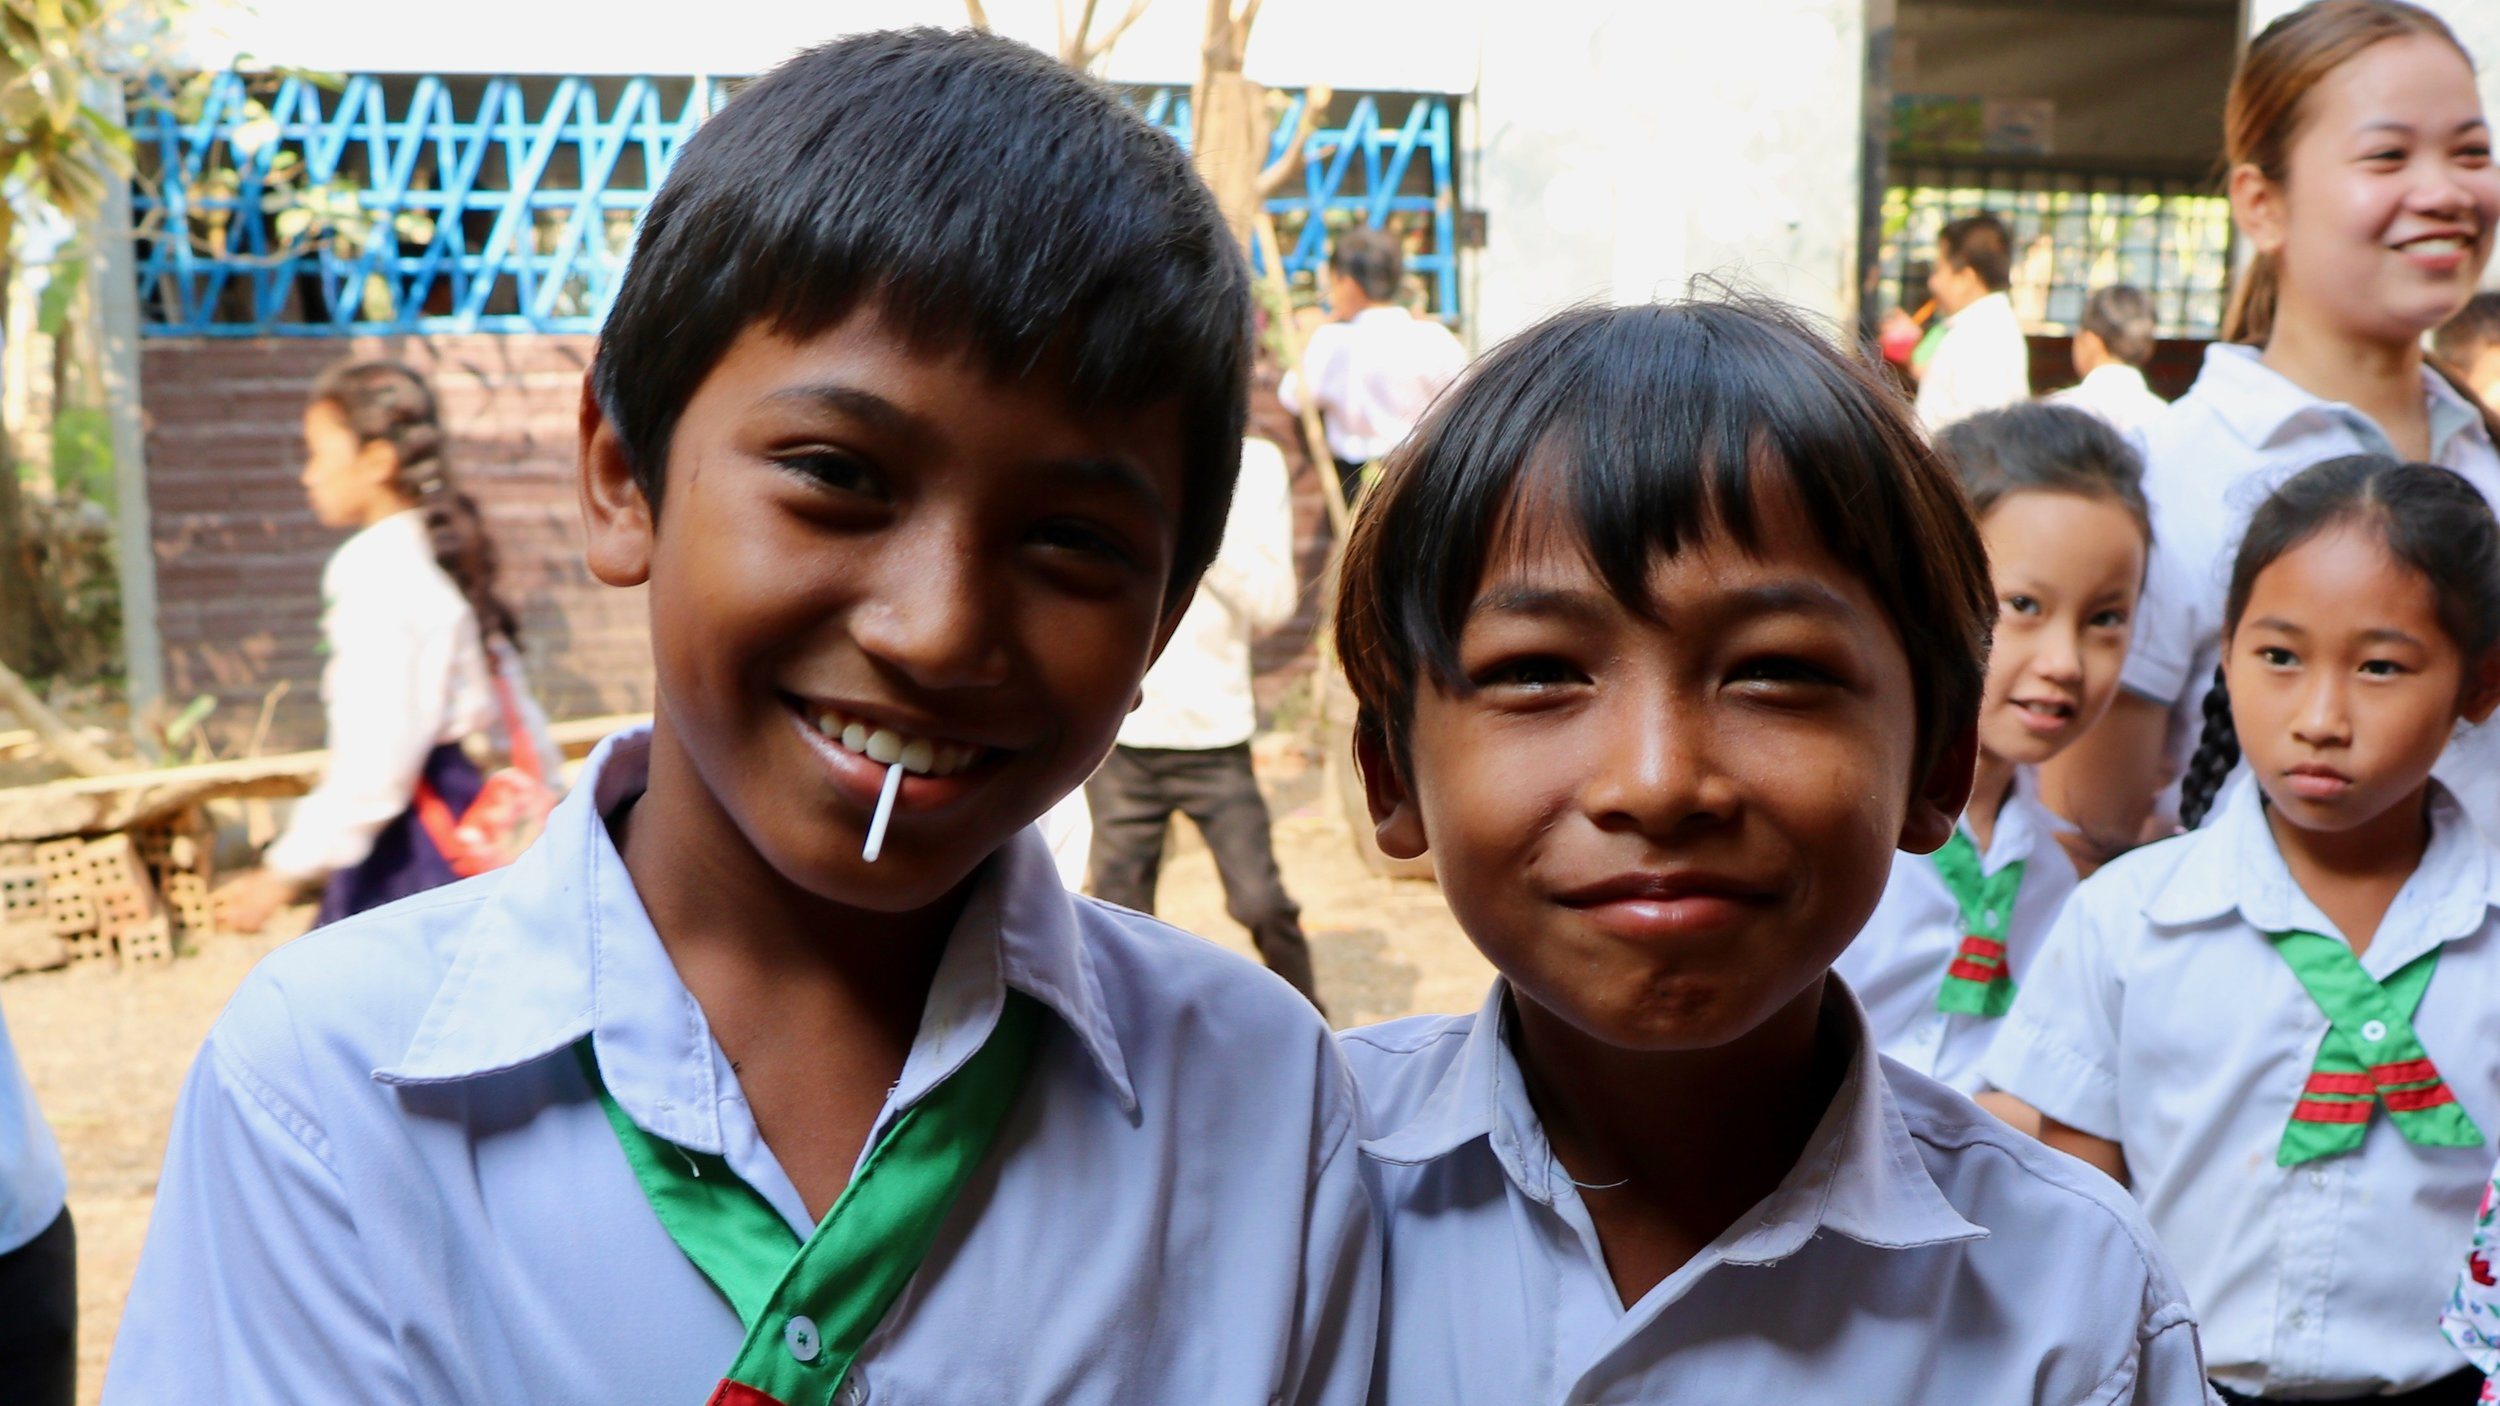 Cambodia - We have partnered with New Hope School to serve 250 students.